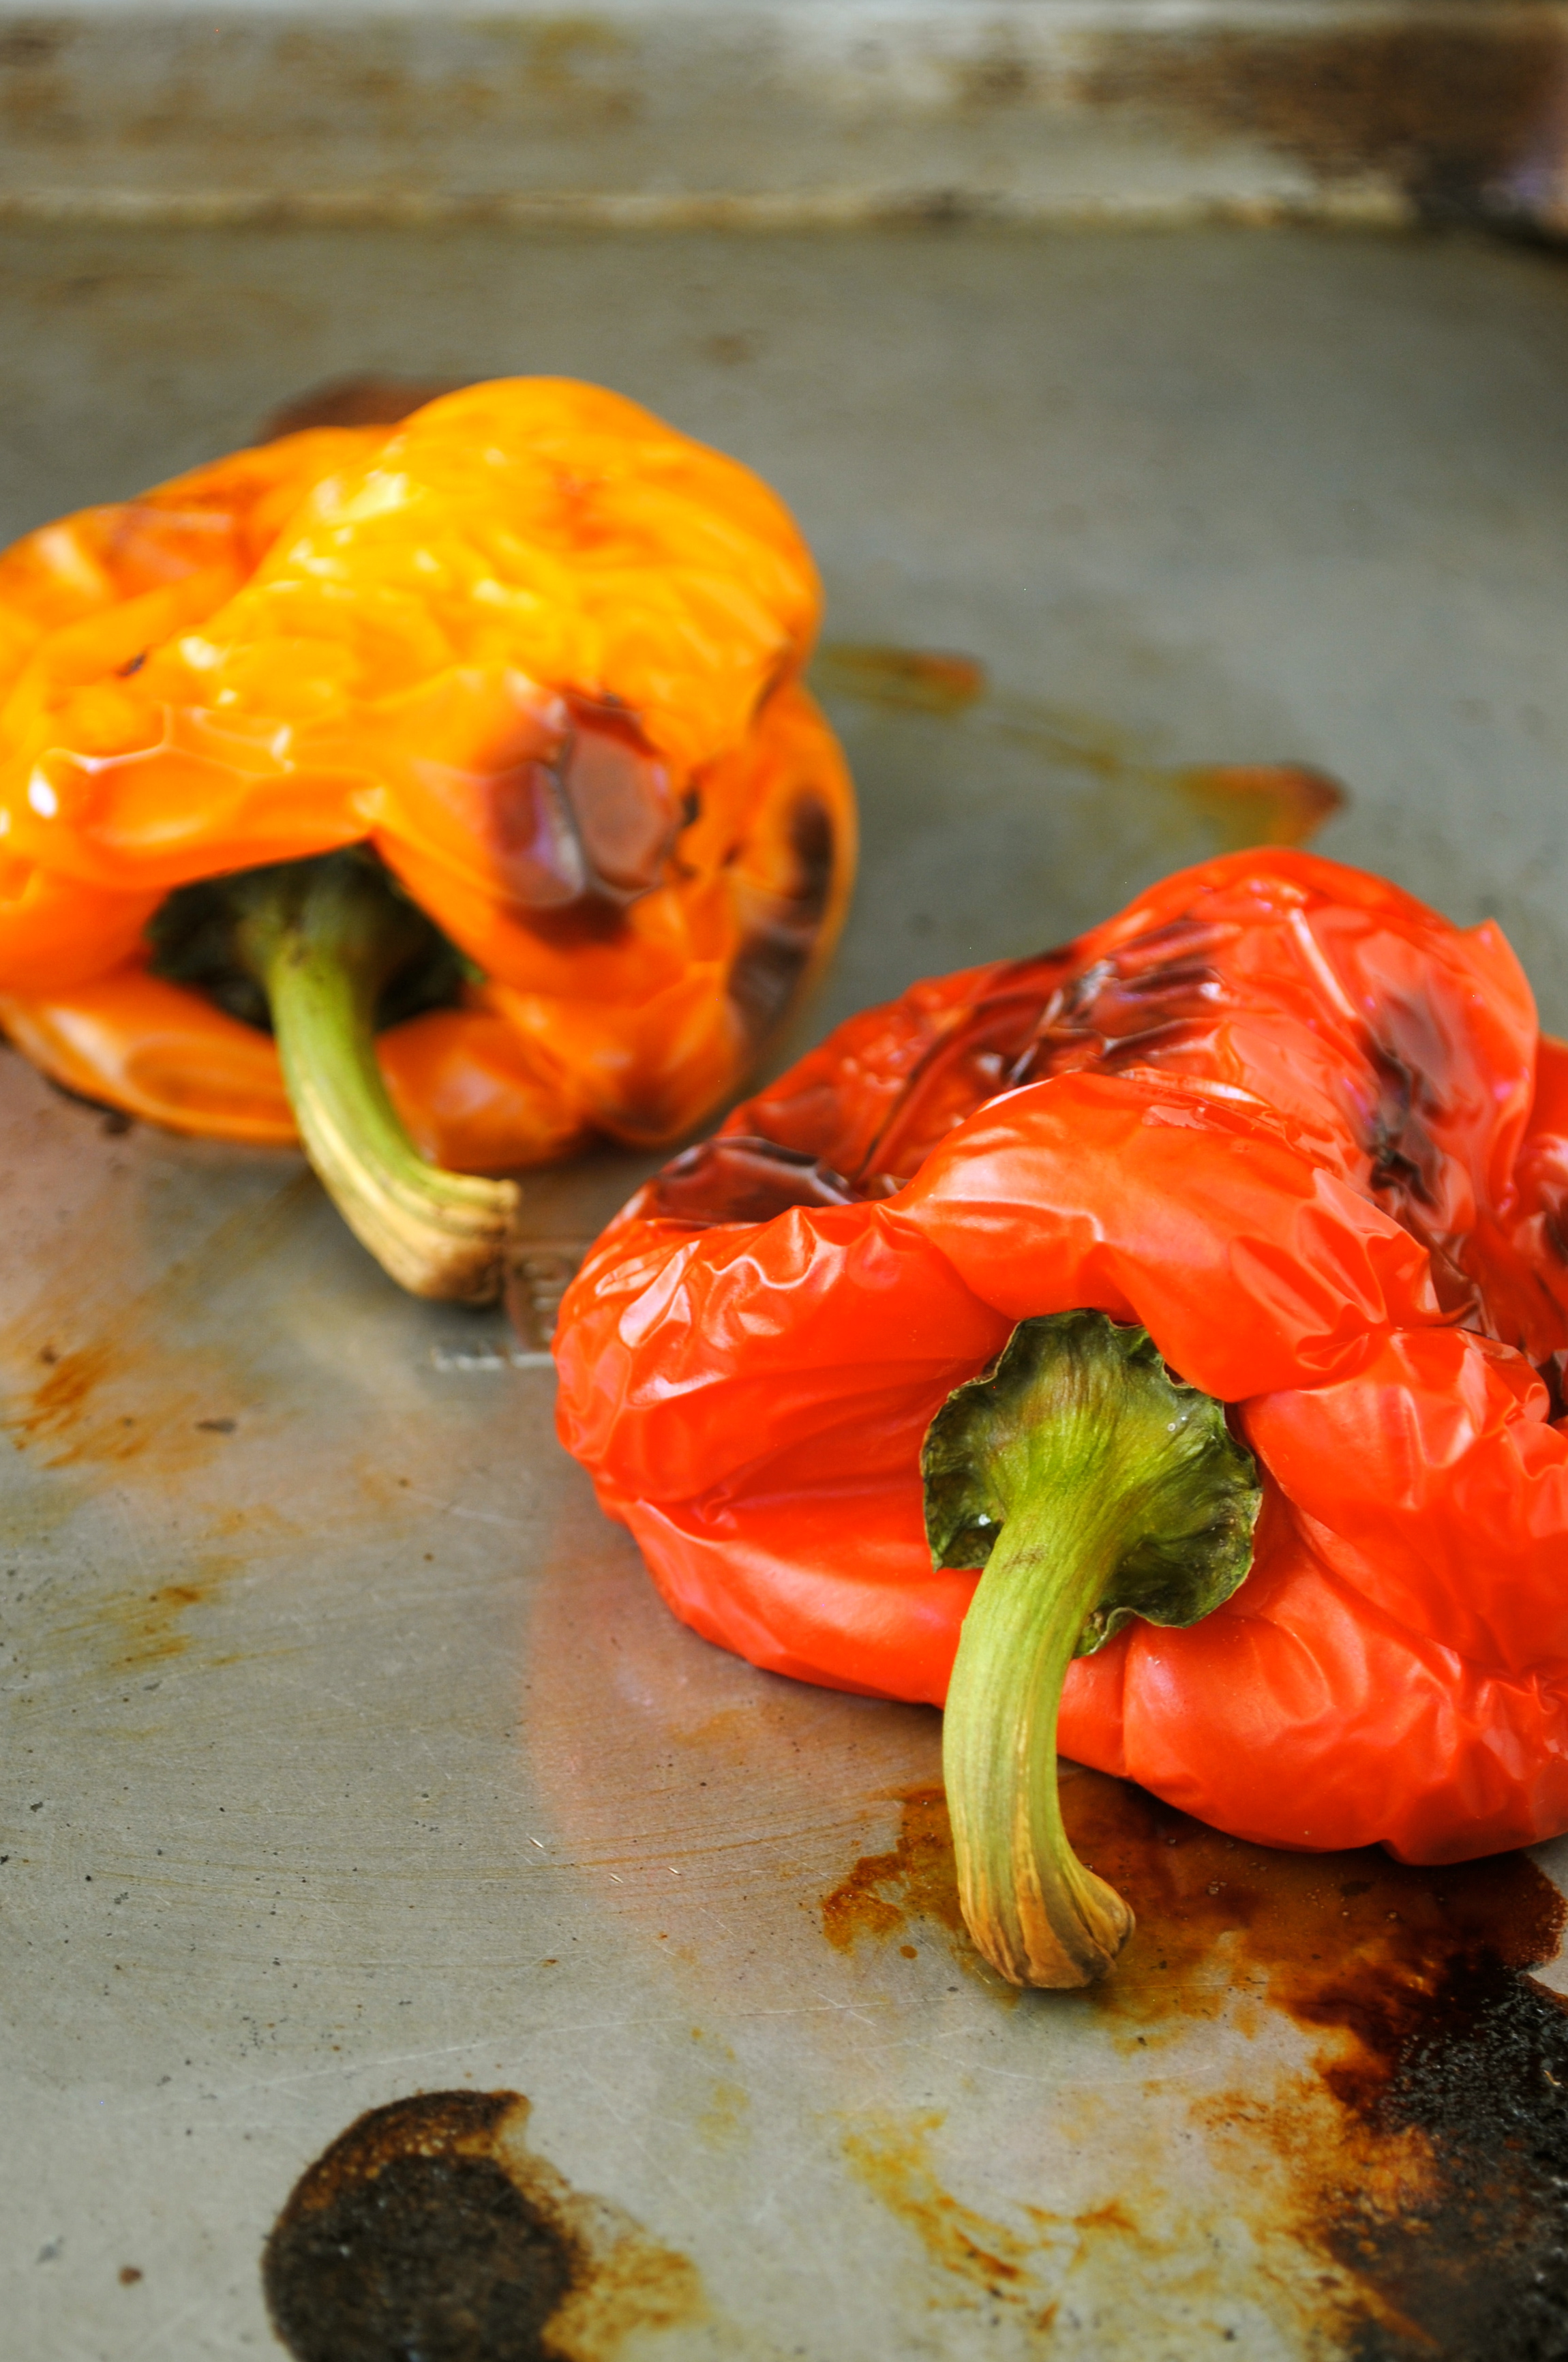 The roasted peppers will end up looking something like these.